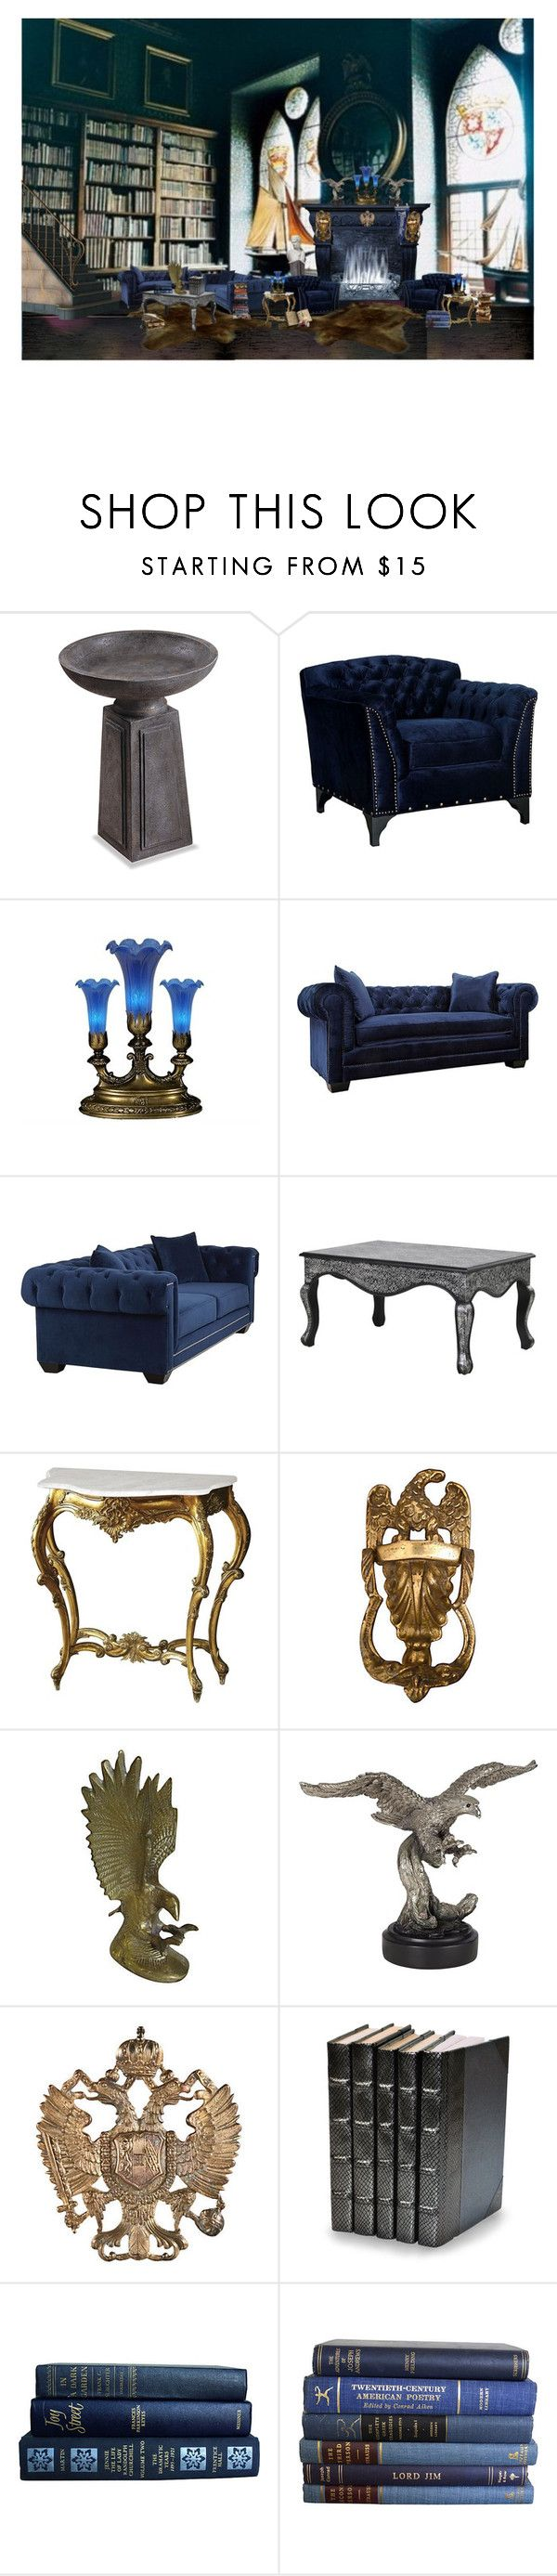 """Ravenclaw common room"" by leopardwolf ❤ liked on Polyvore featuring interior, interiors, interior design, home, home decor, interior decorating, Thos. Baker, Universal Lighting and Decor, Meyda and Relique"